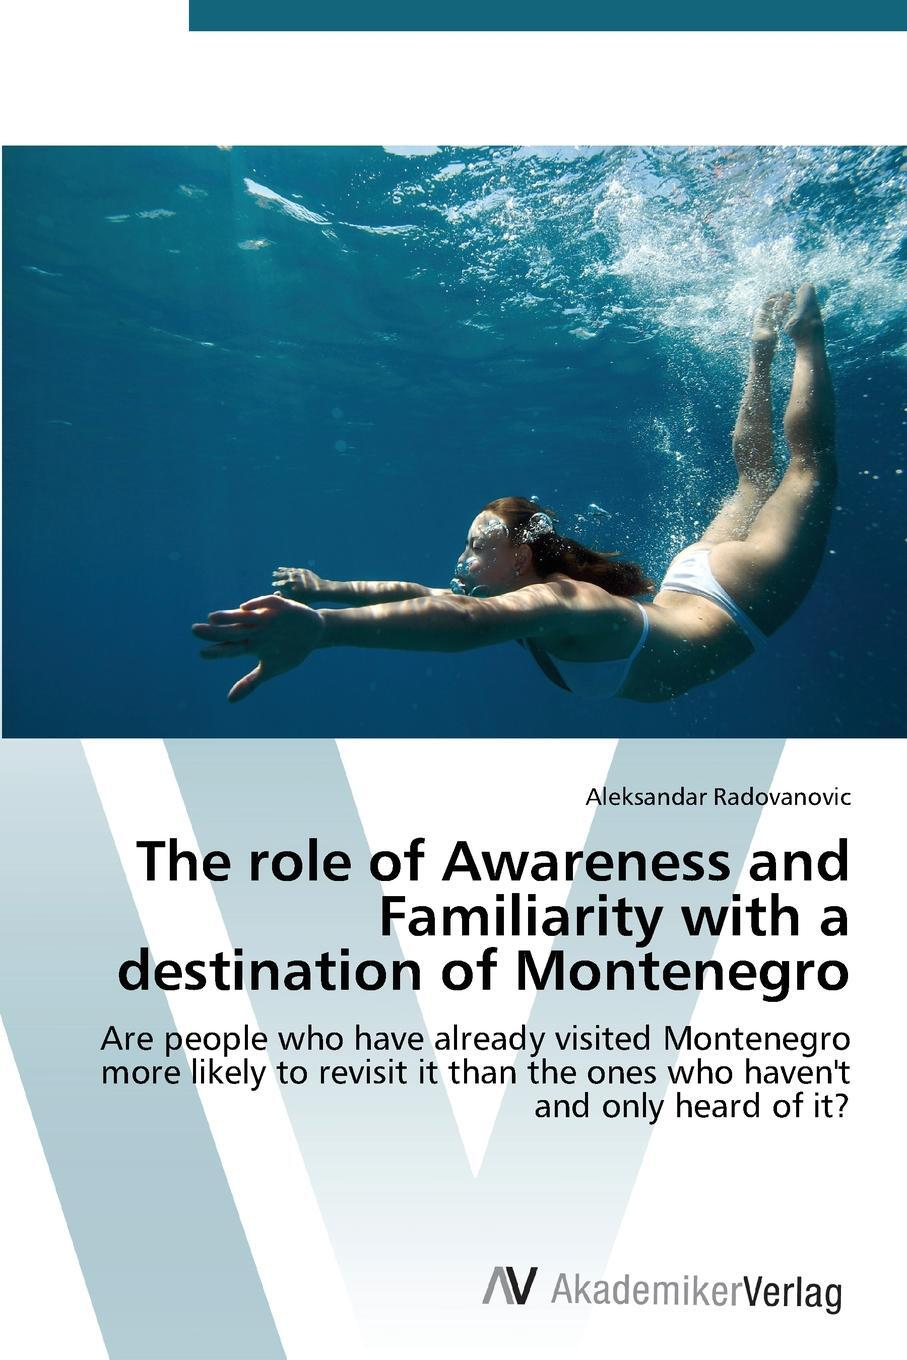 The Role of Awareness and Familiarity with a Destination of Montenegro